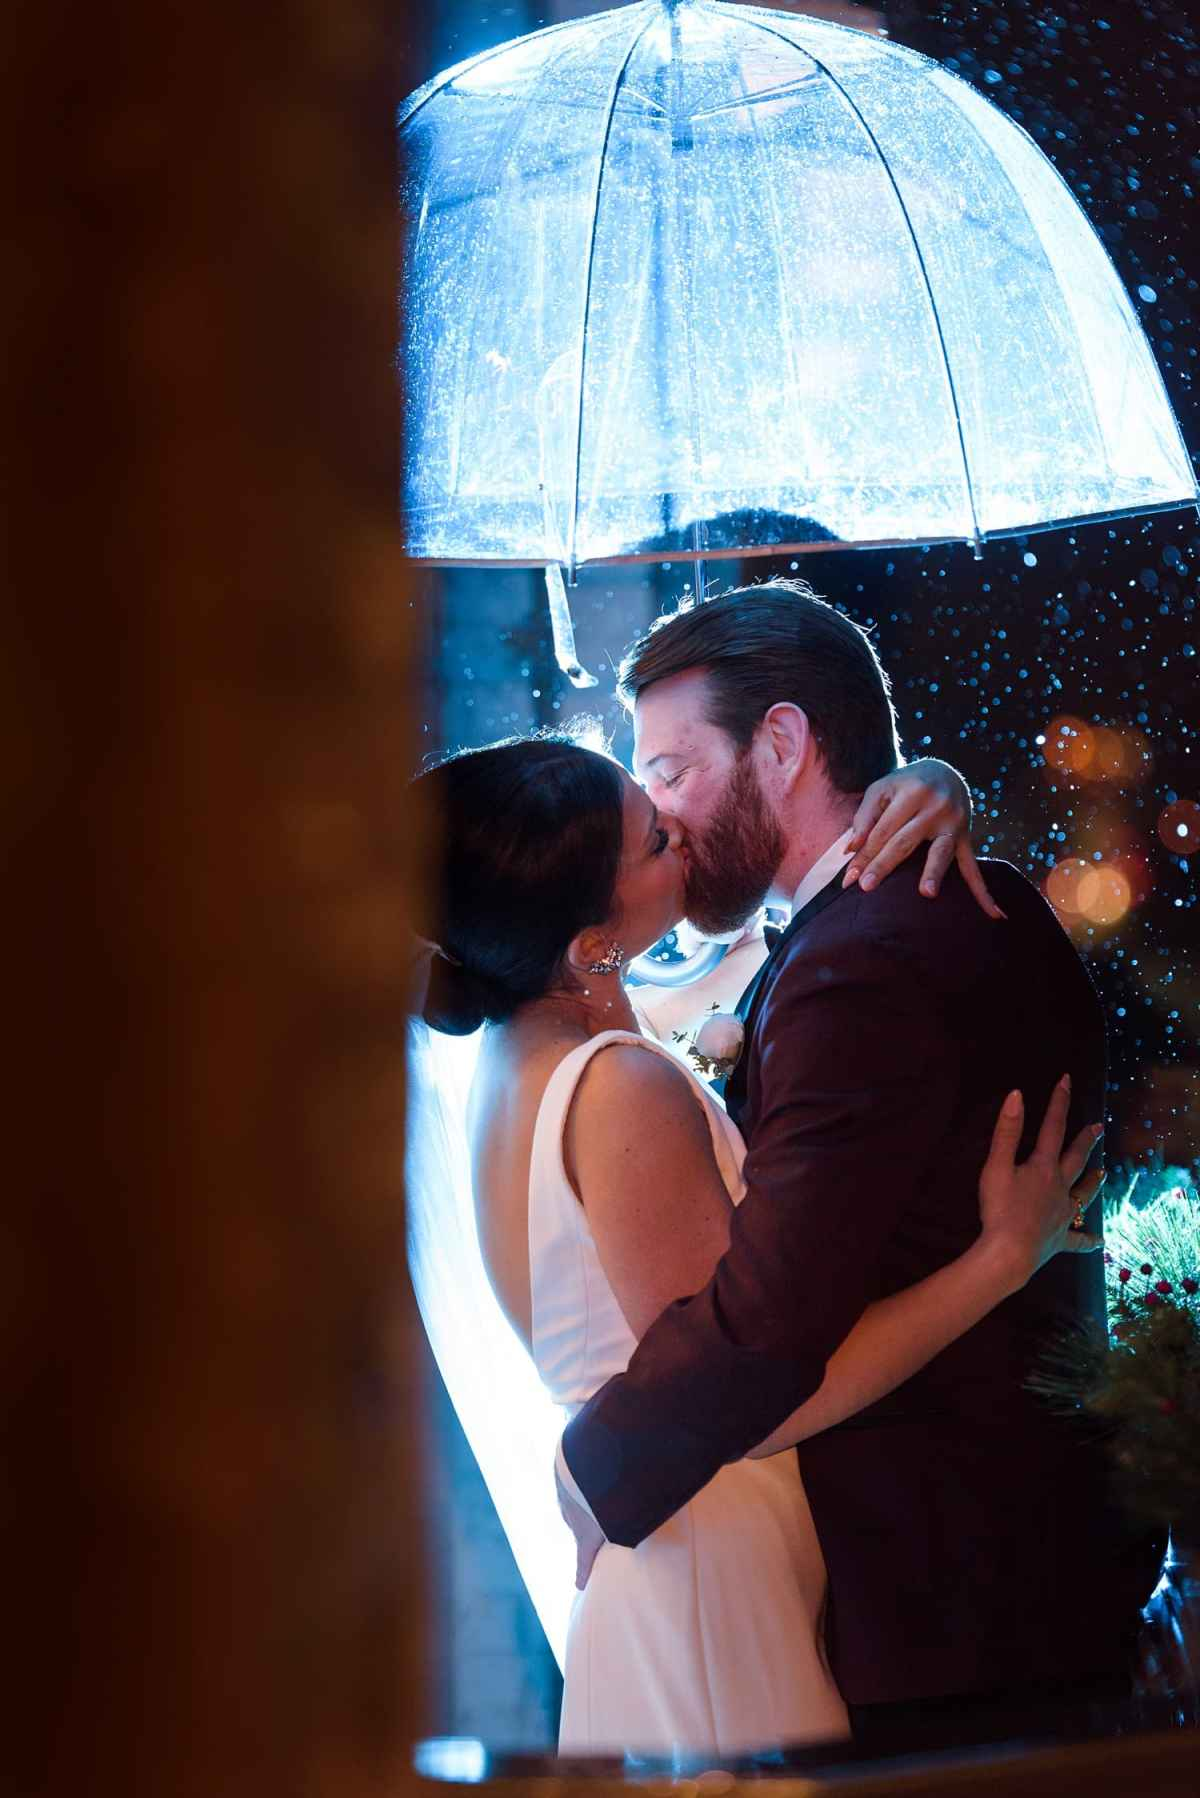 bride and groom kiss under an. umbrella in the rain at night on the tea room balcony